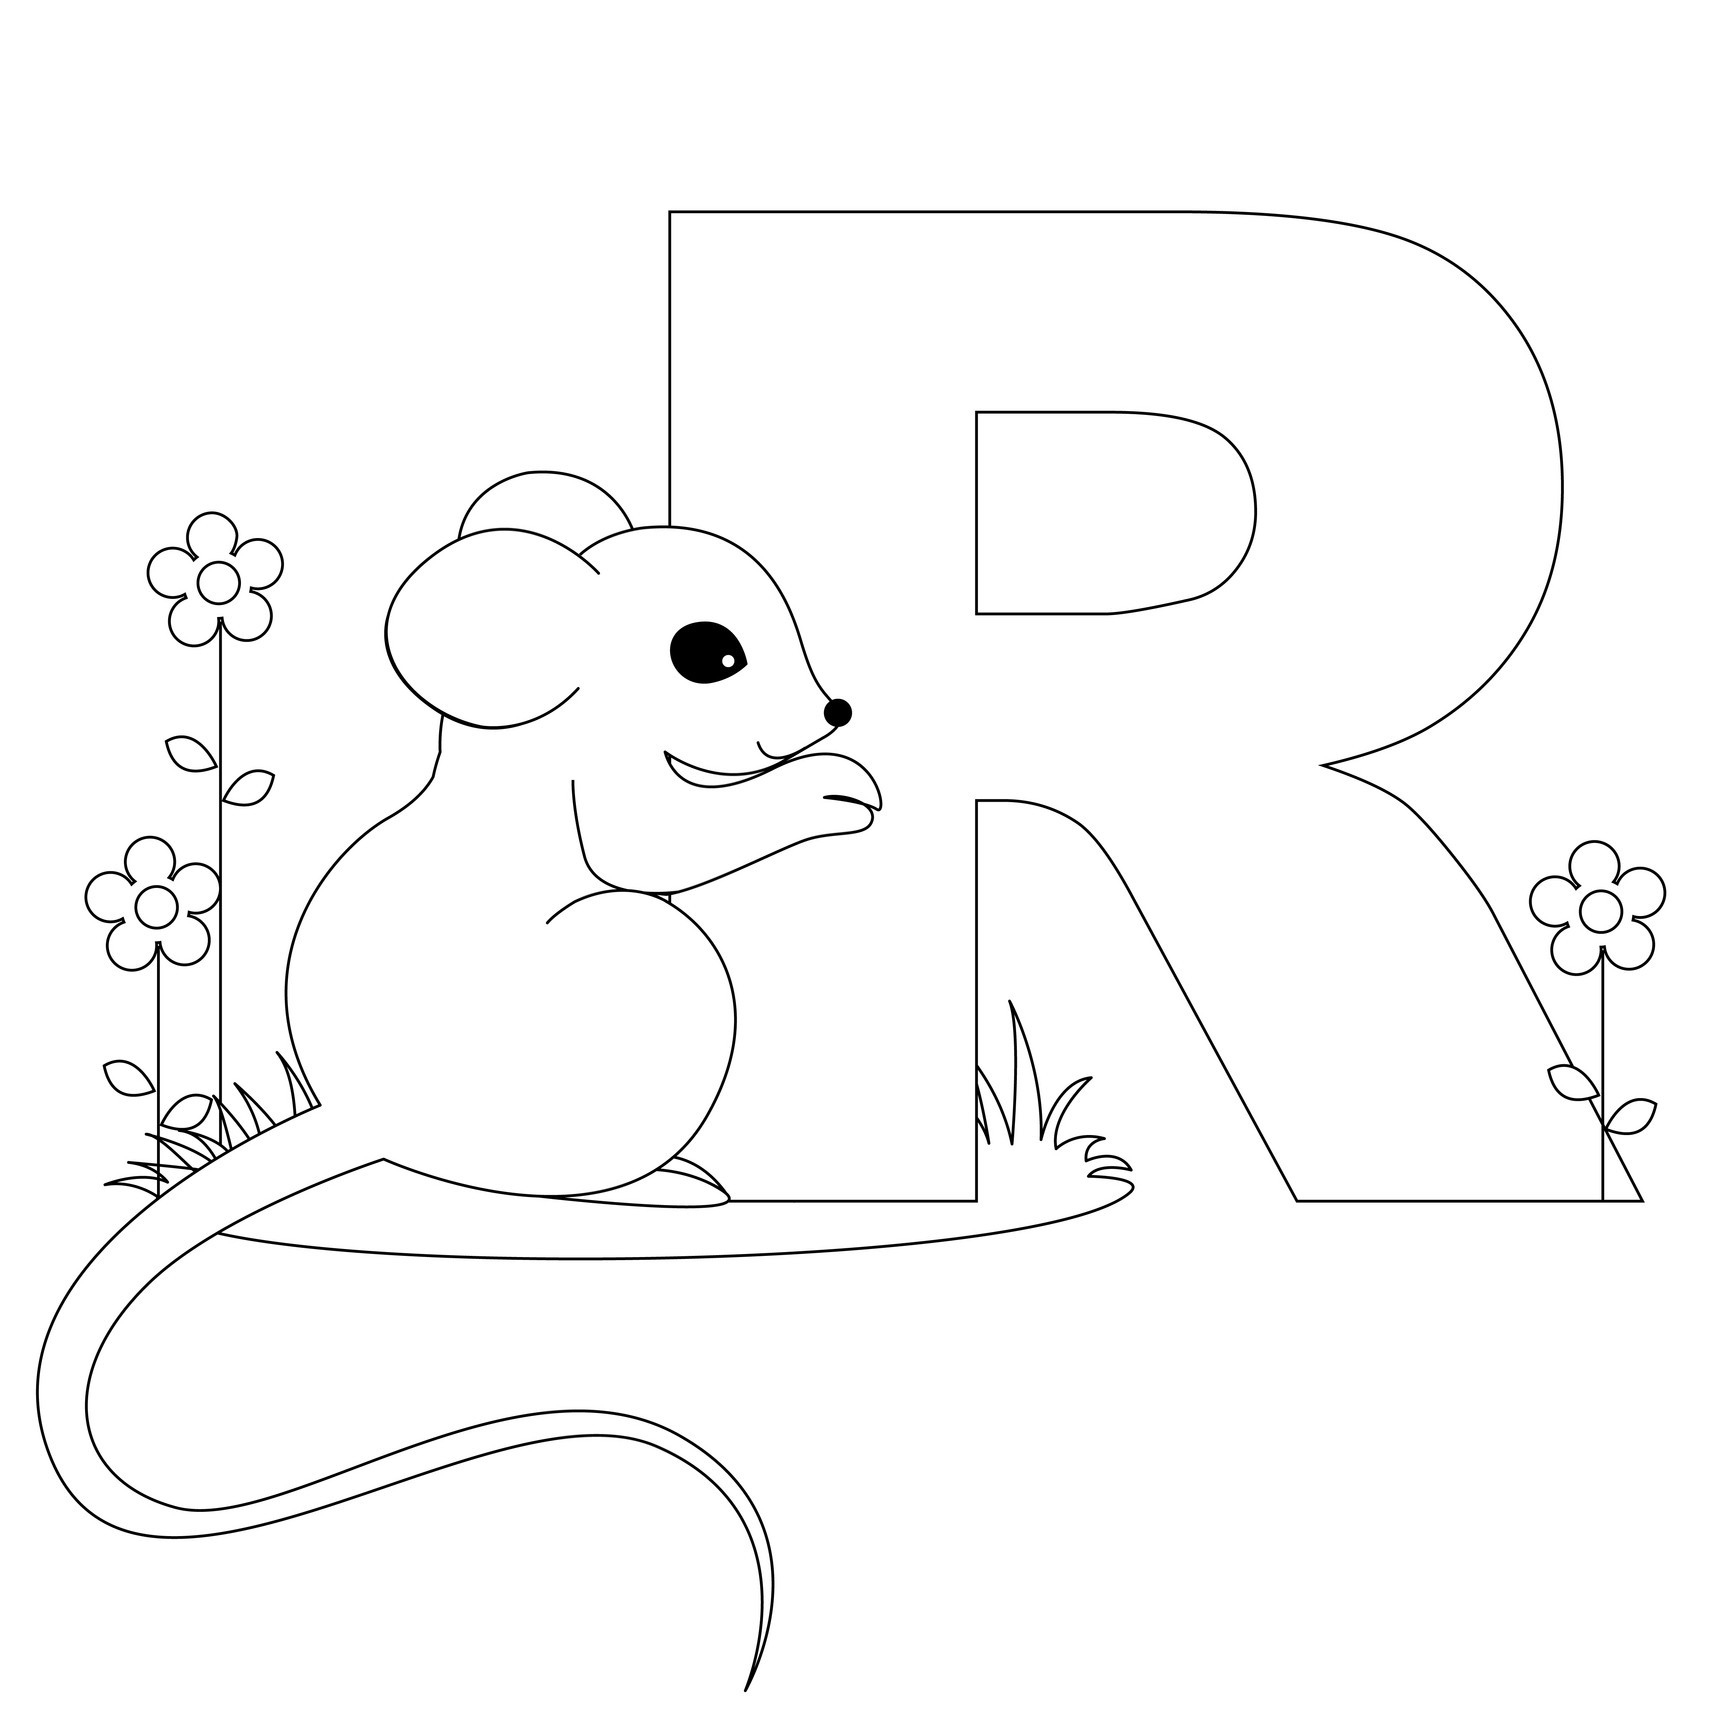 r coloring pictures letter r is for rainbow coloring page free printable pictures r coloring